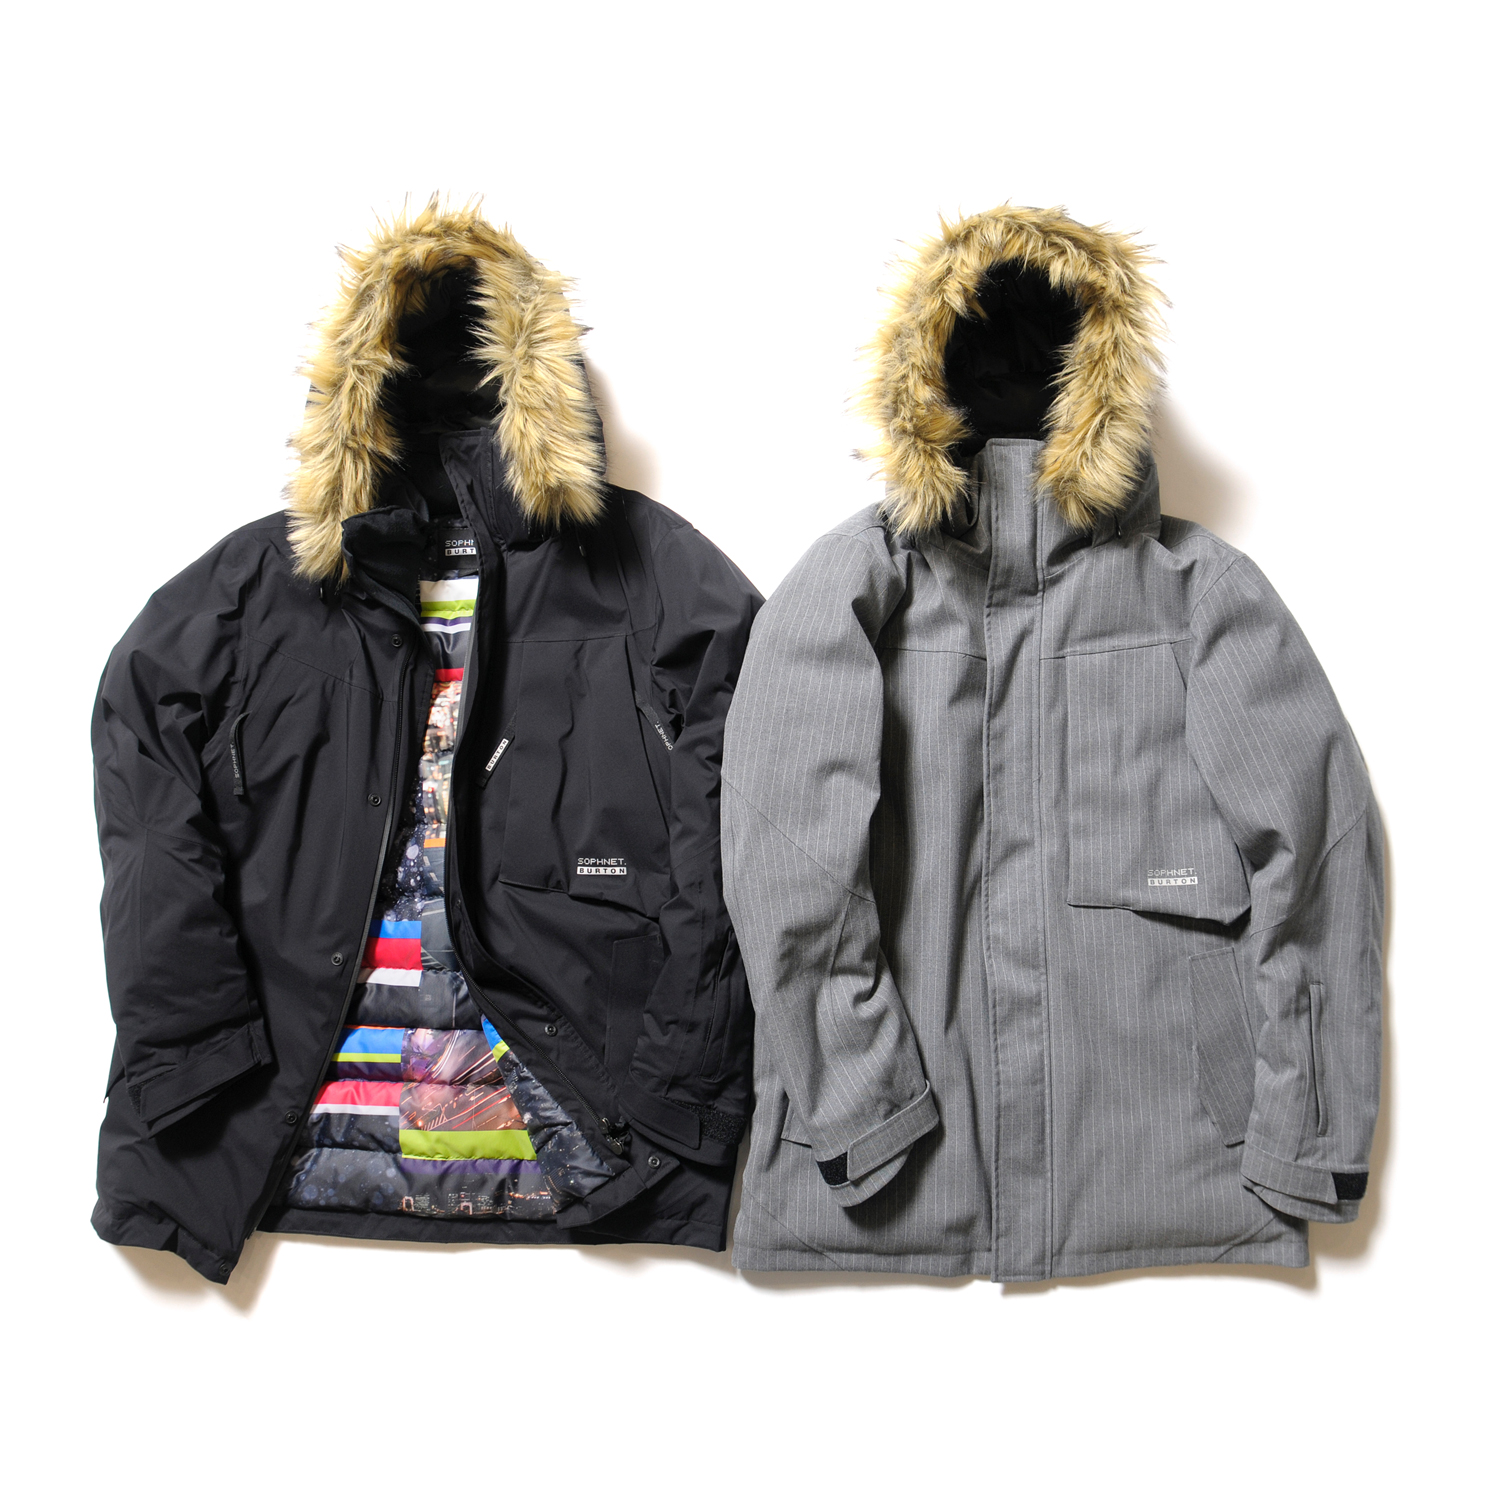 <2.5 LAYER FUR DOWN PARKA> color : BLACK , GRAY / size : S , M , L , XL price : 95,000 + TAX (BLACK) ,105,000 + TAX (GRAY)